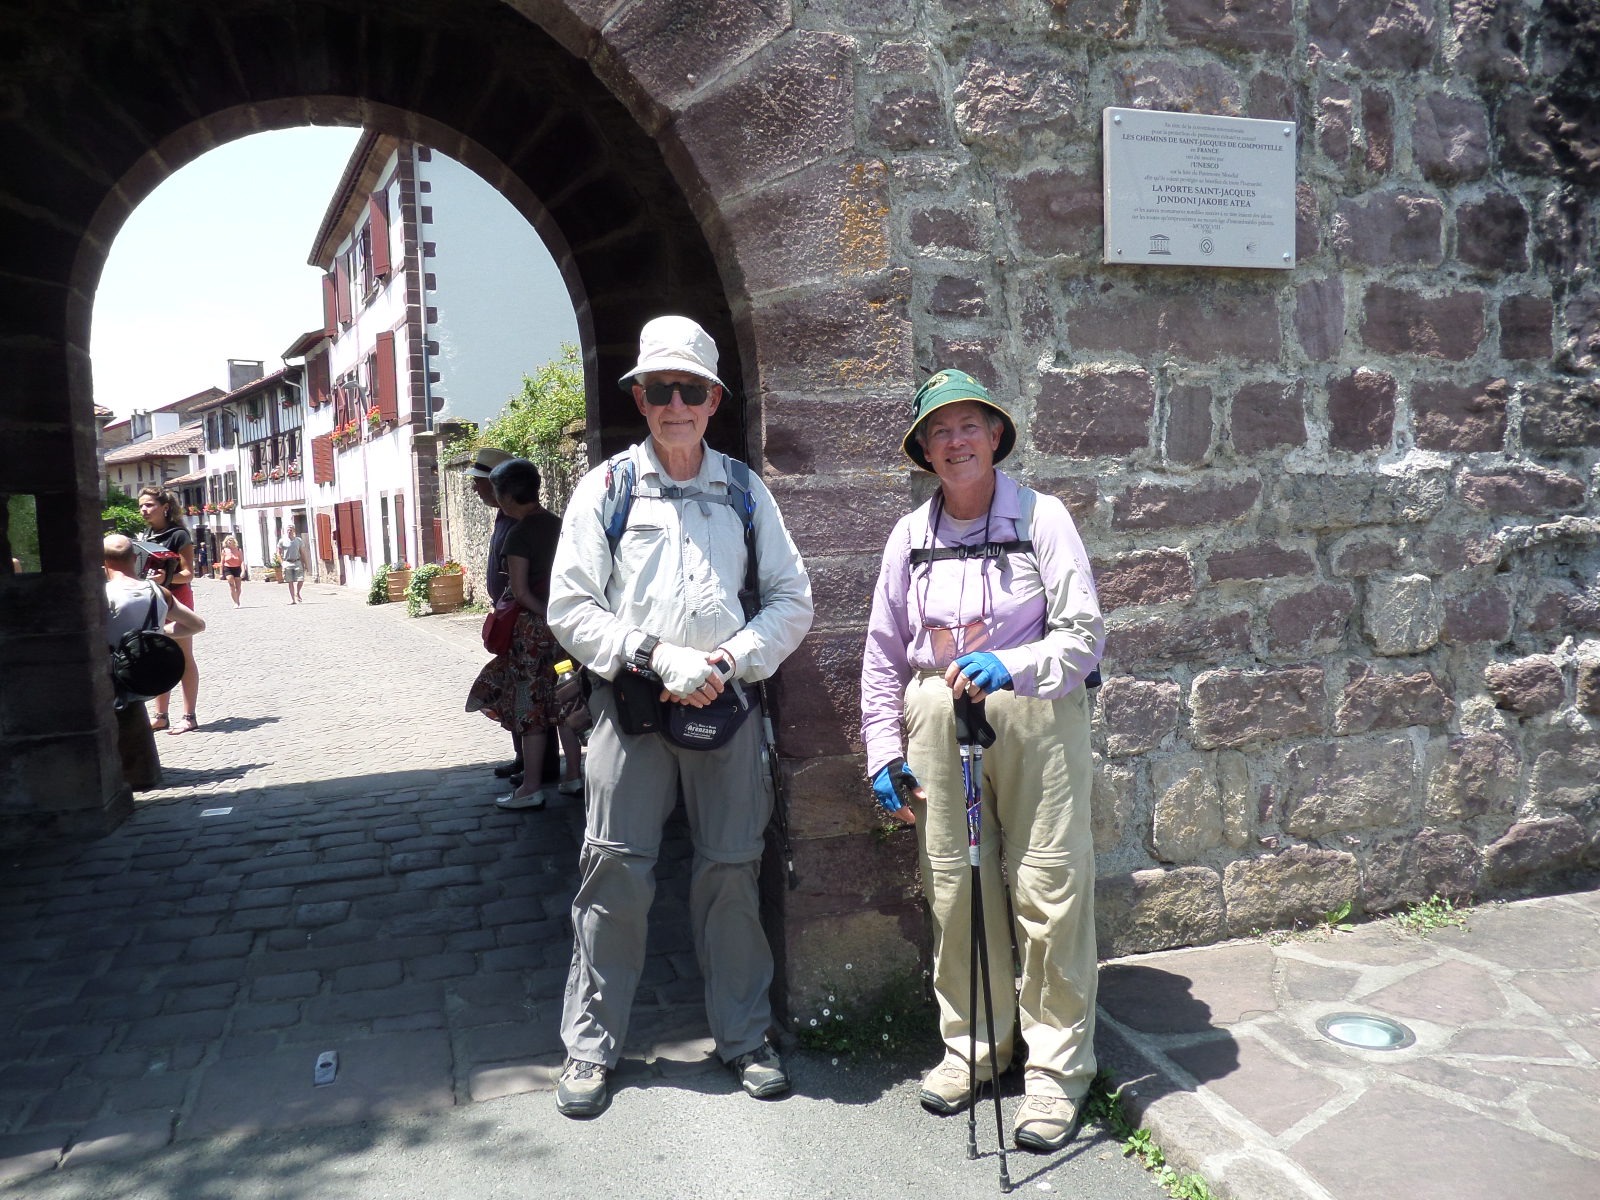 A photo of a man and a woman standing at the town gate of St Jean Pied de Port.